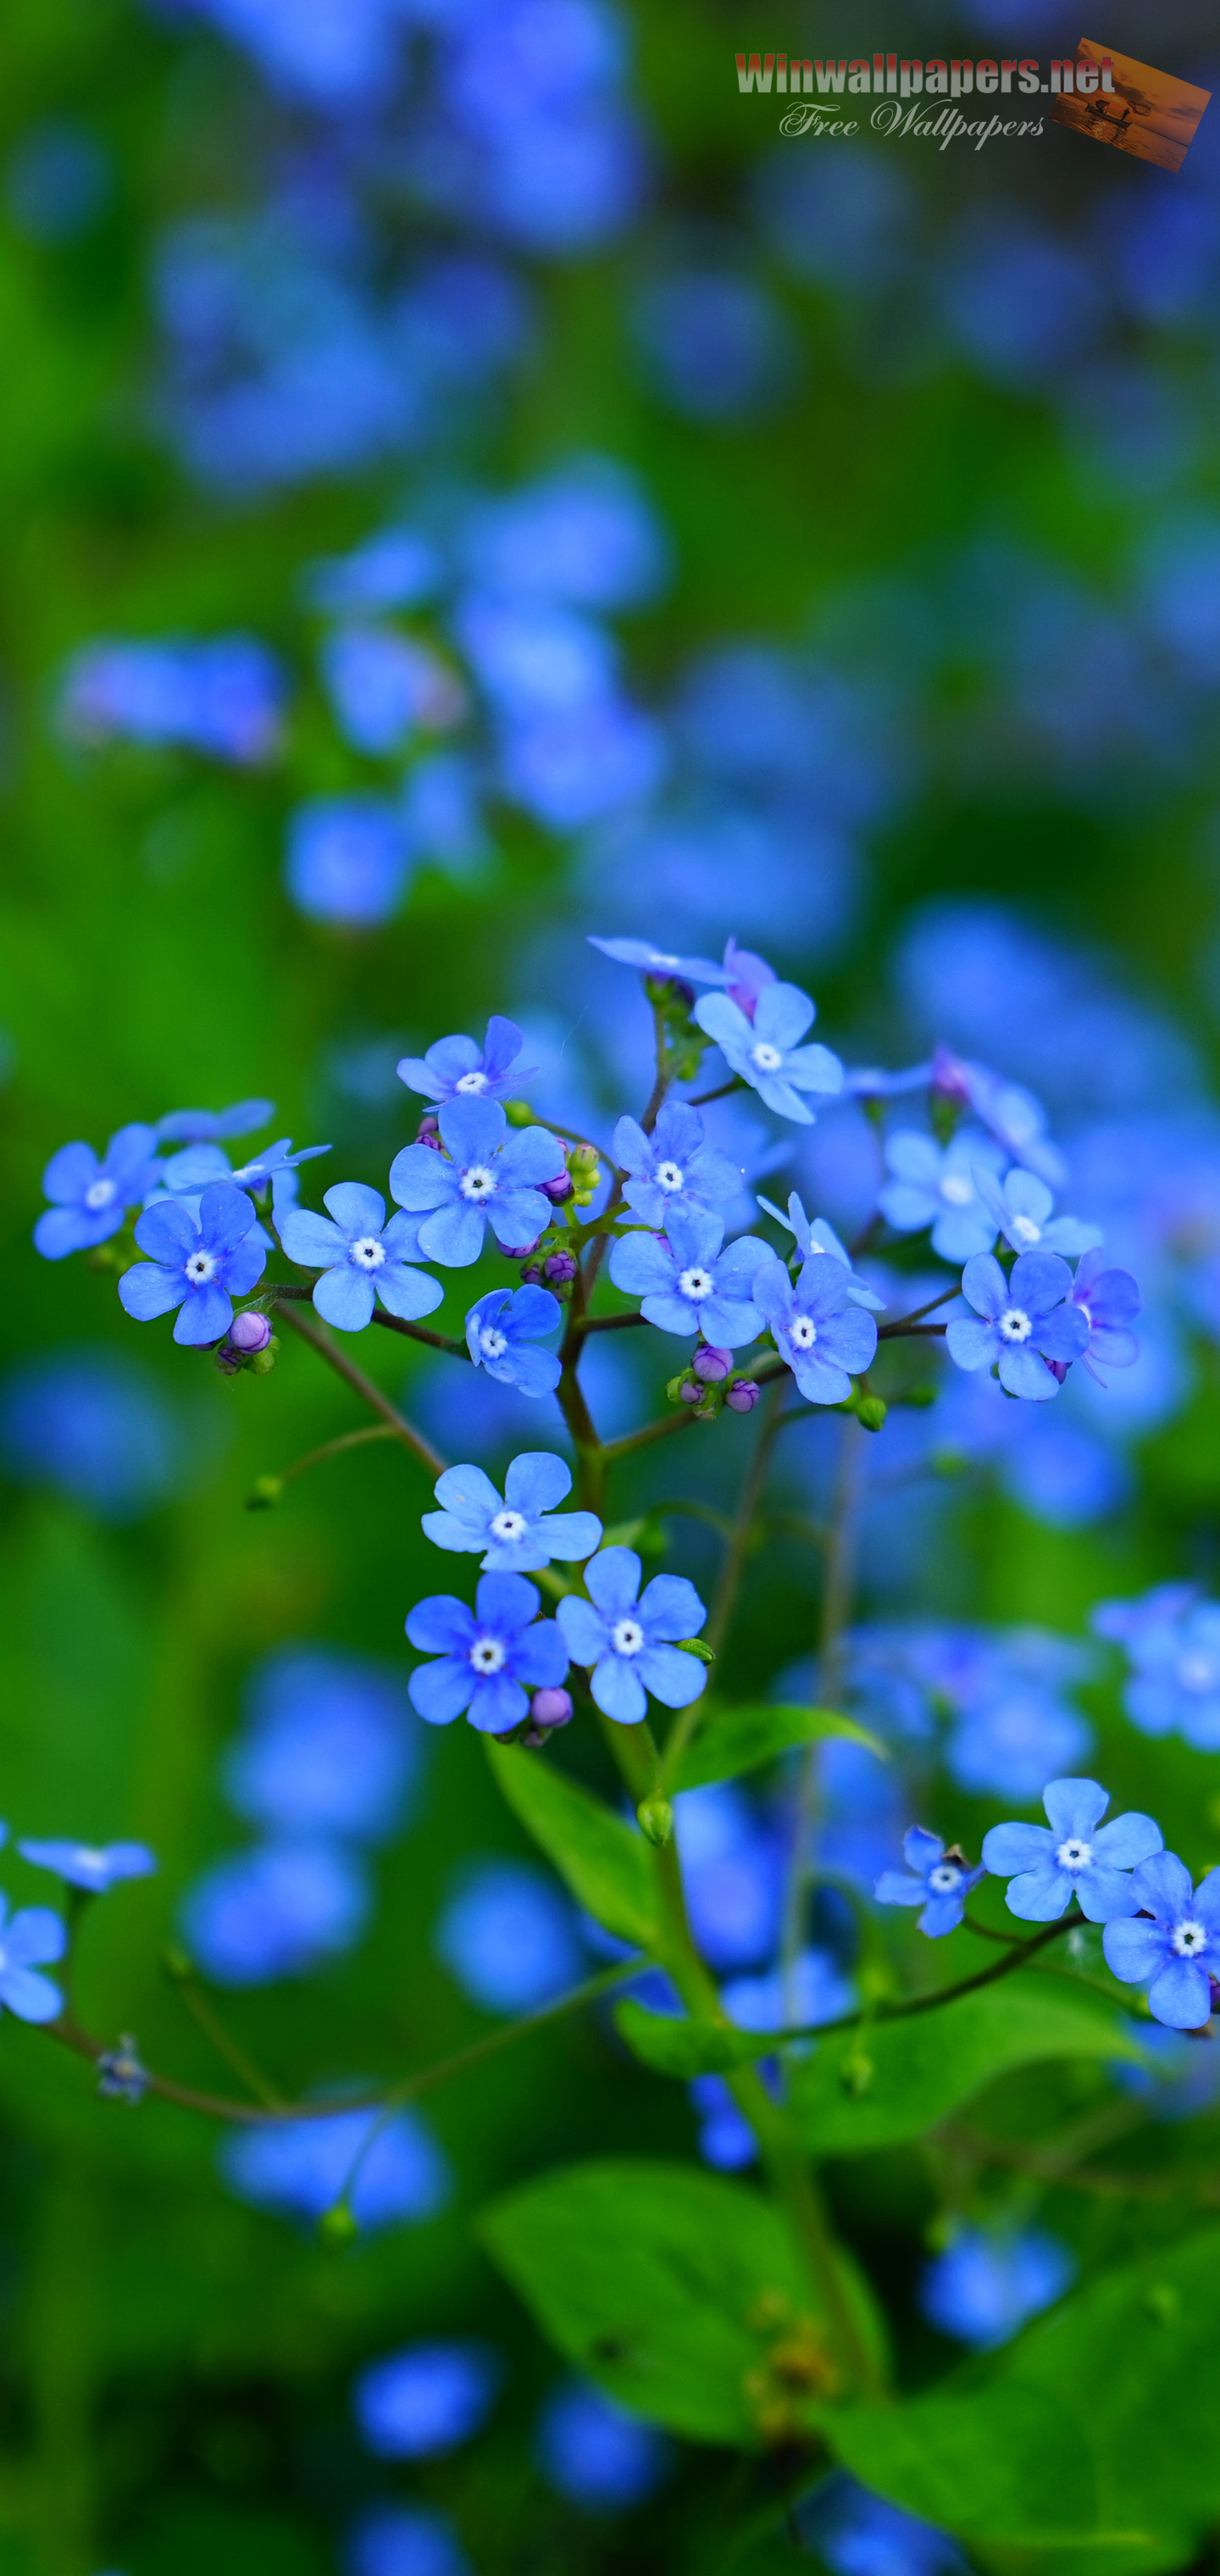 Flowers Background For Galaxy S10 Forget Me Not Hd 1440x3040 Wallpaper Teahub Io